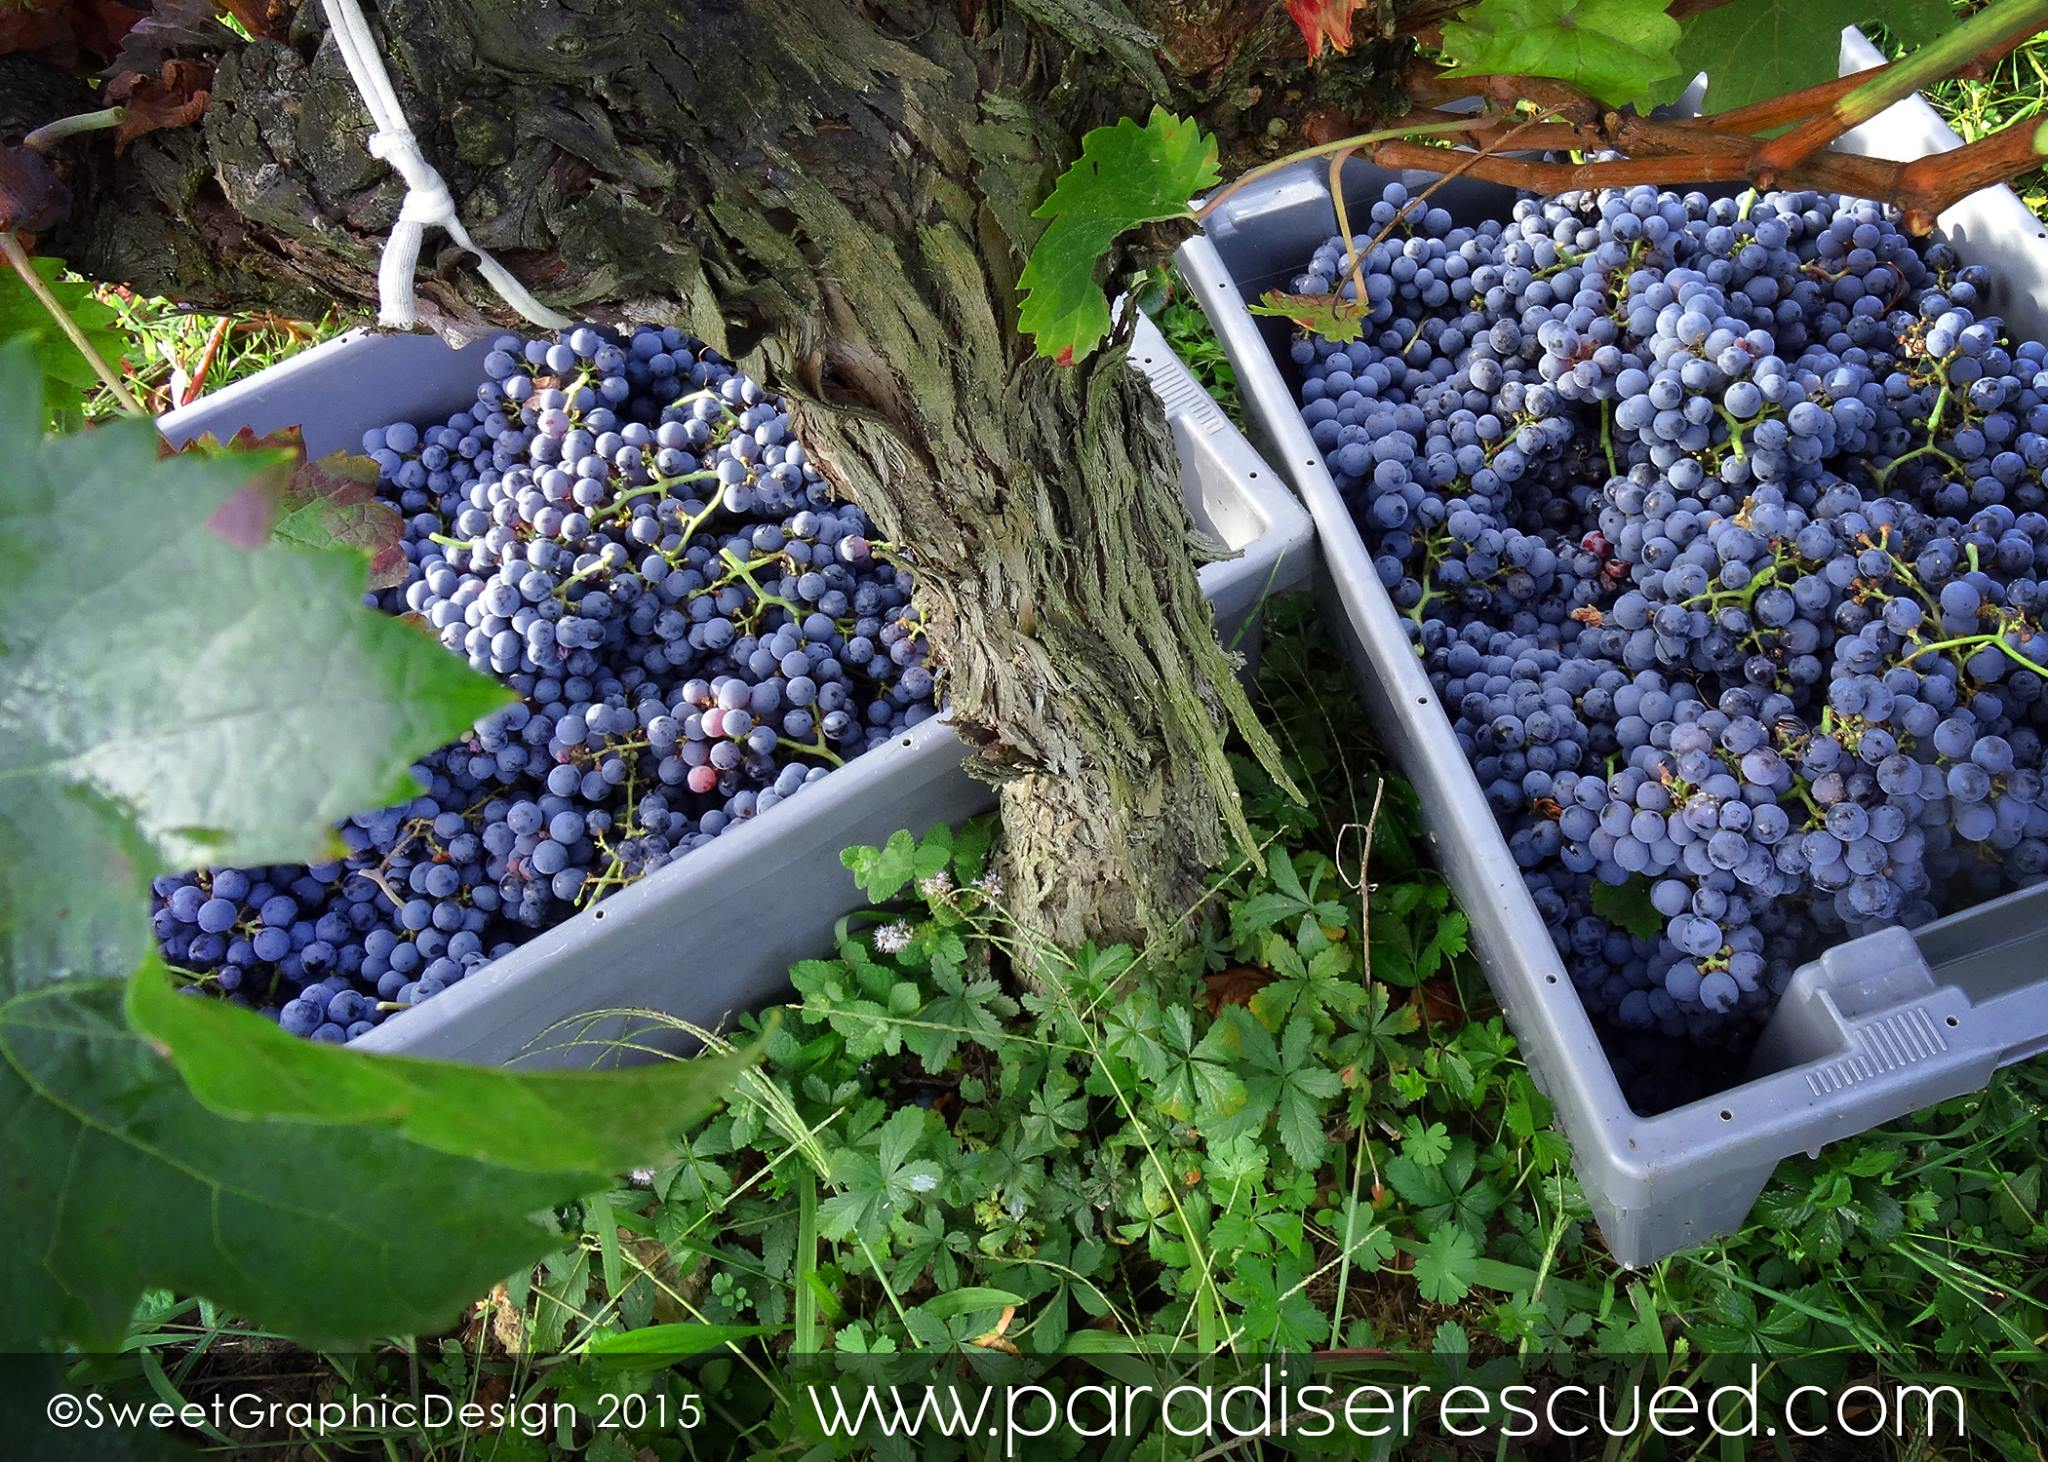 B1ockOne Cabernet Franc just harvested at Paradise Rescued Bordeaux